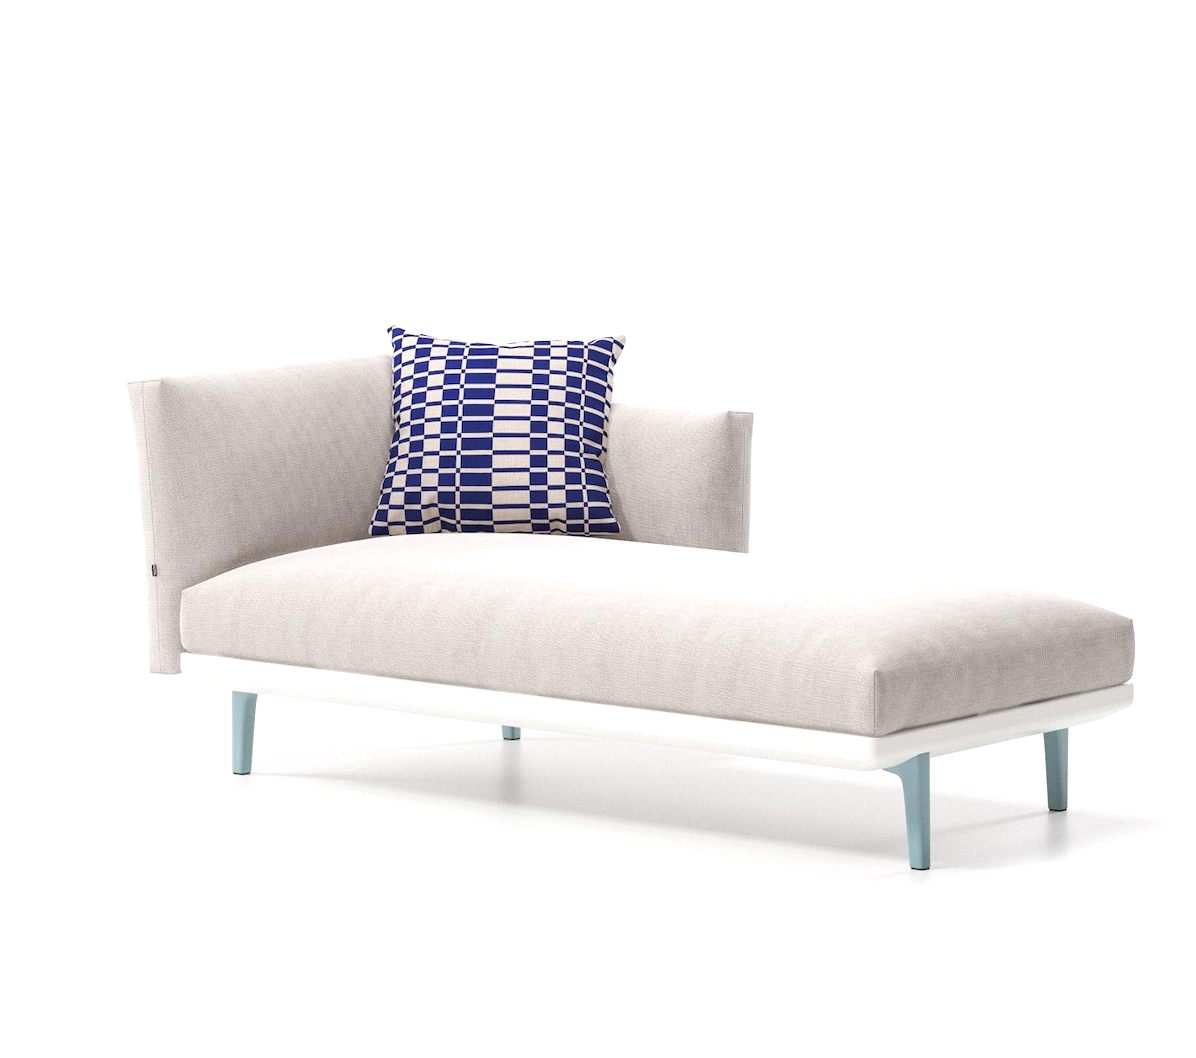 Product Image Boma chaise Lounge